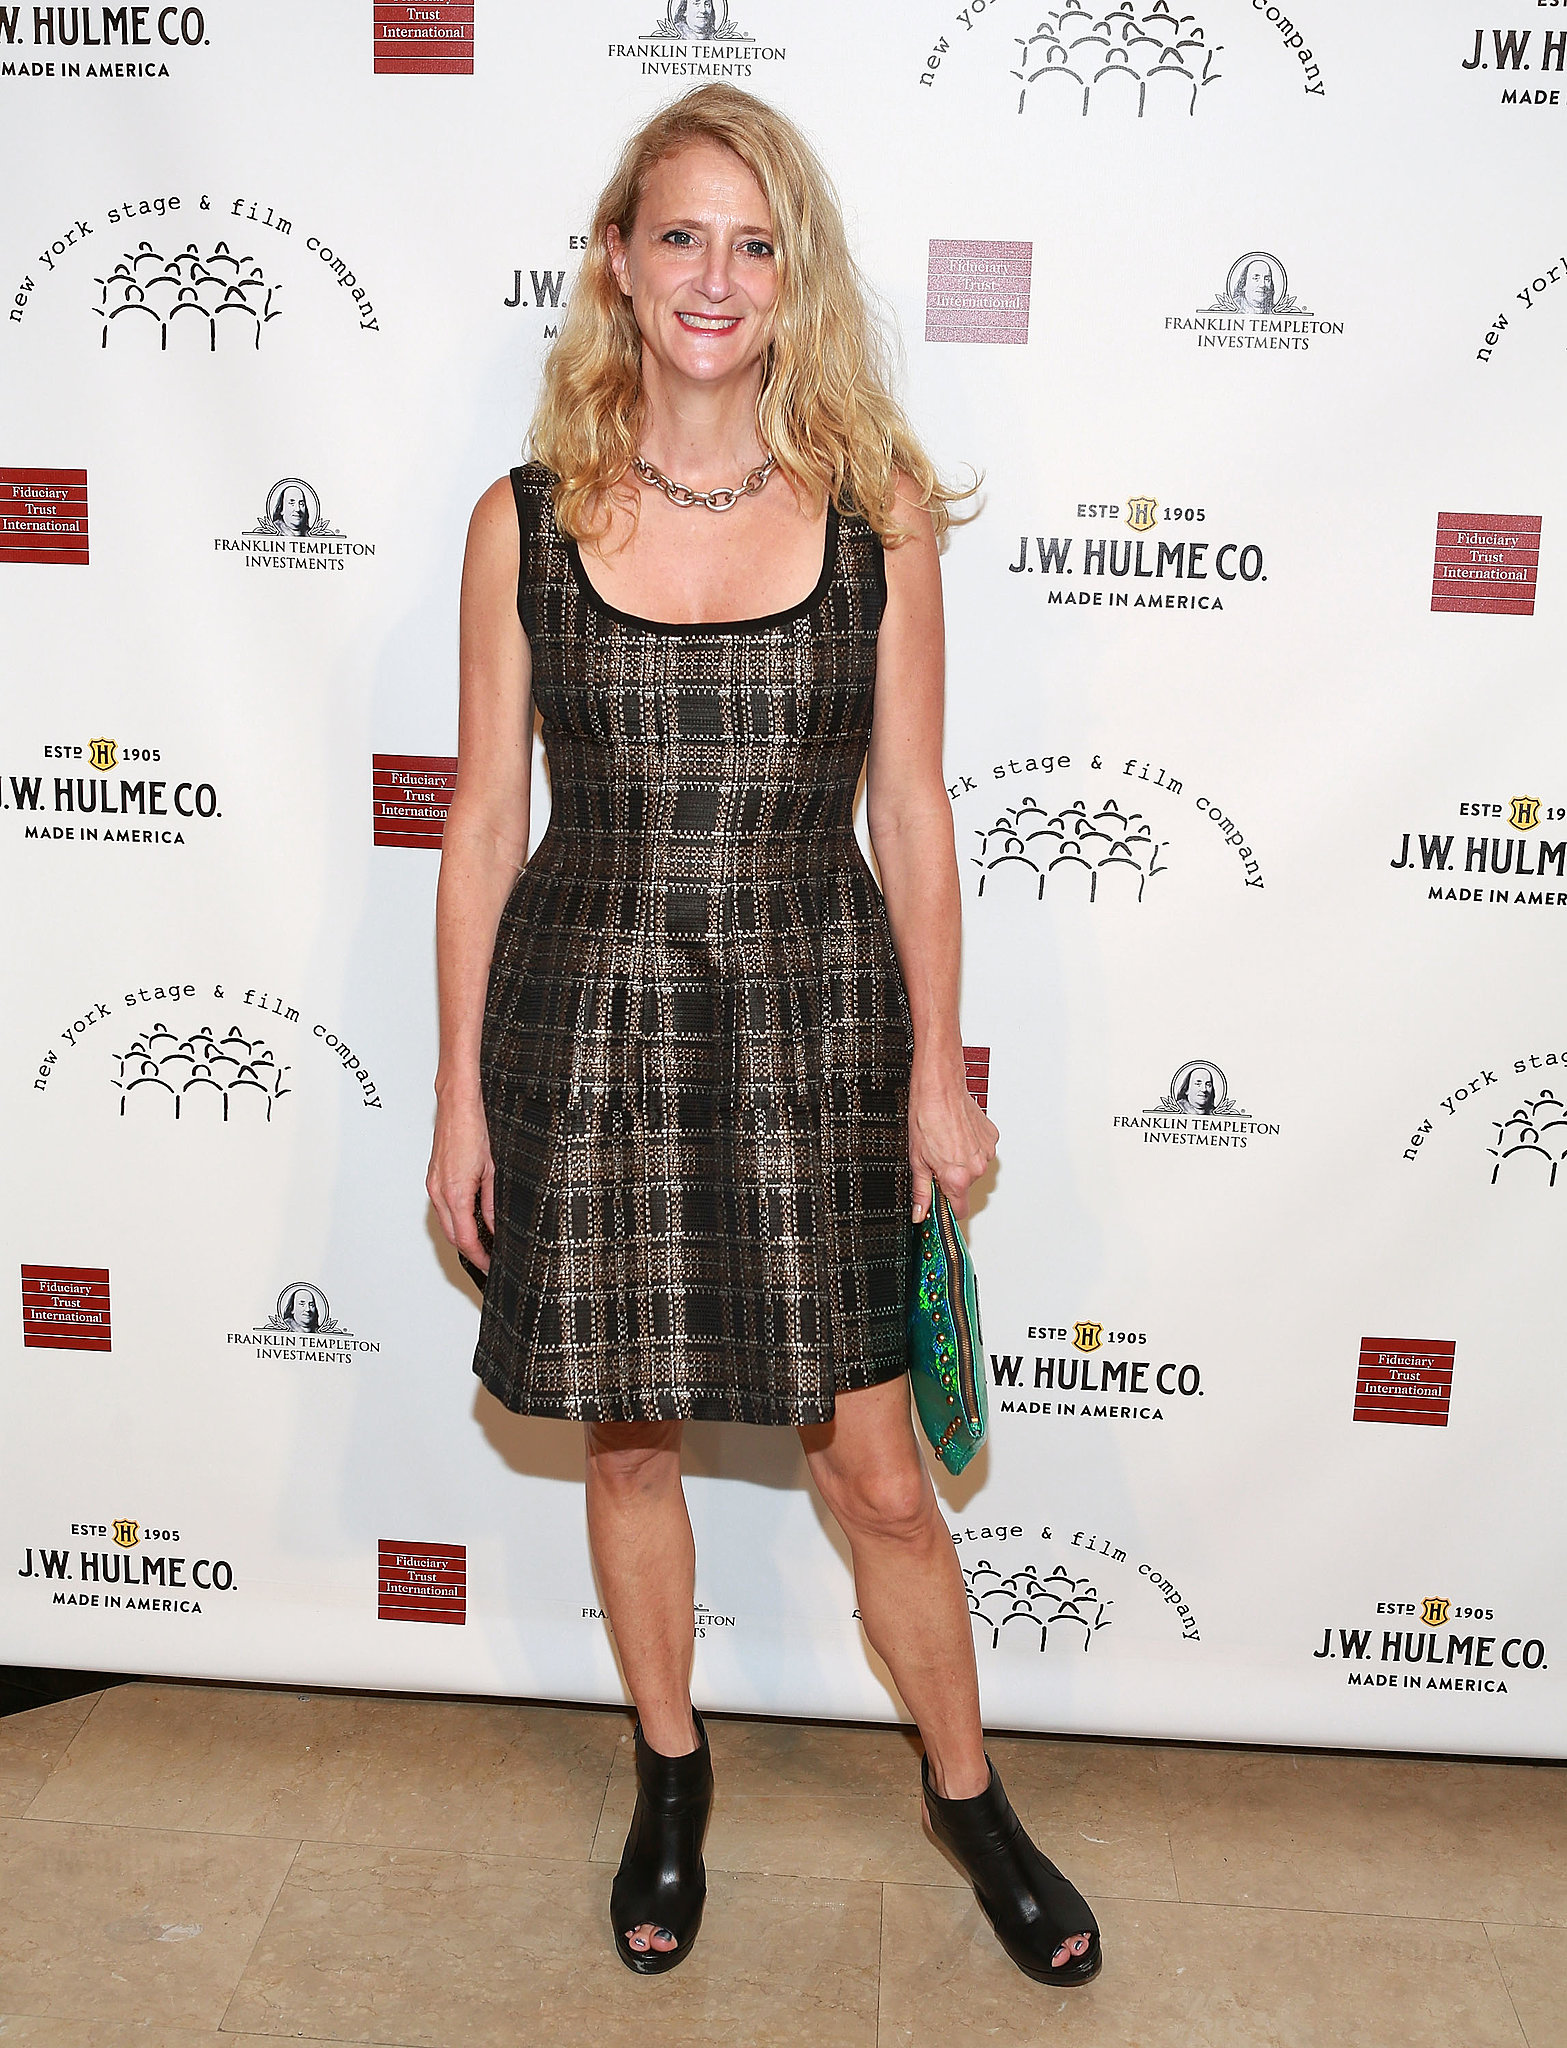 Nanette Lepore at the New York Stage and Film Gala.